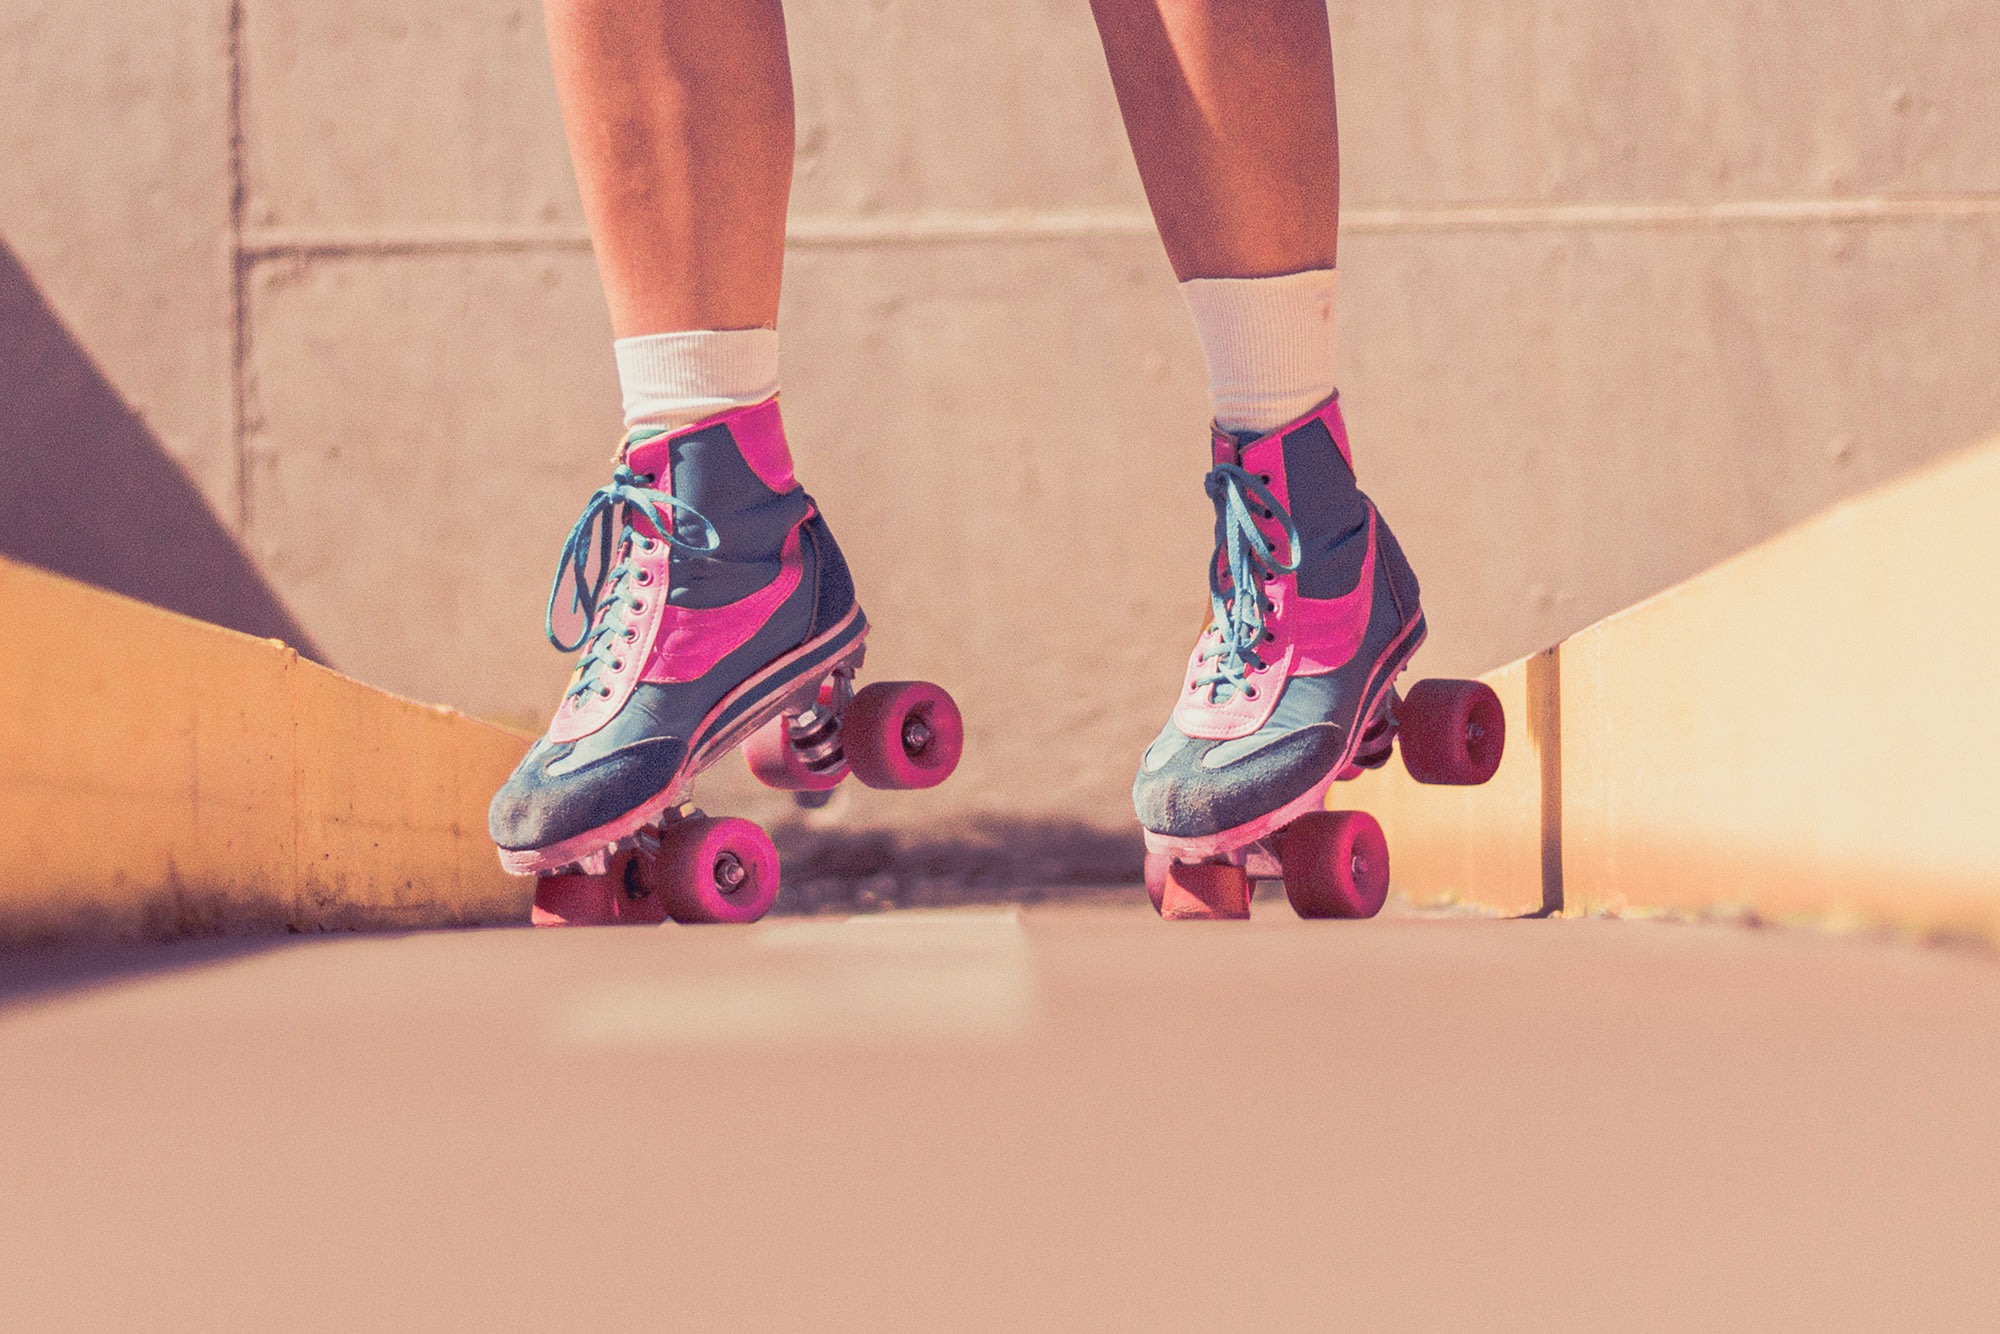 A person on roller skates, tilted on their toes.